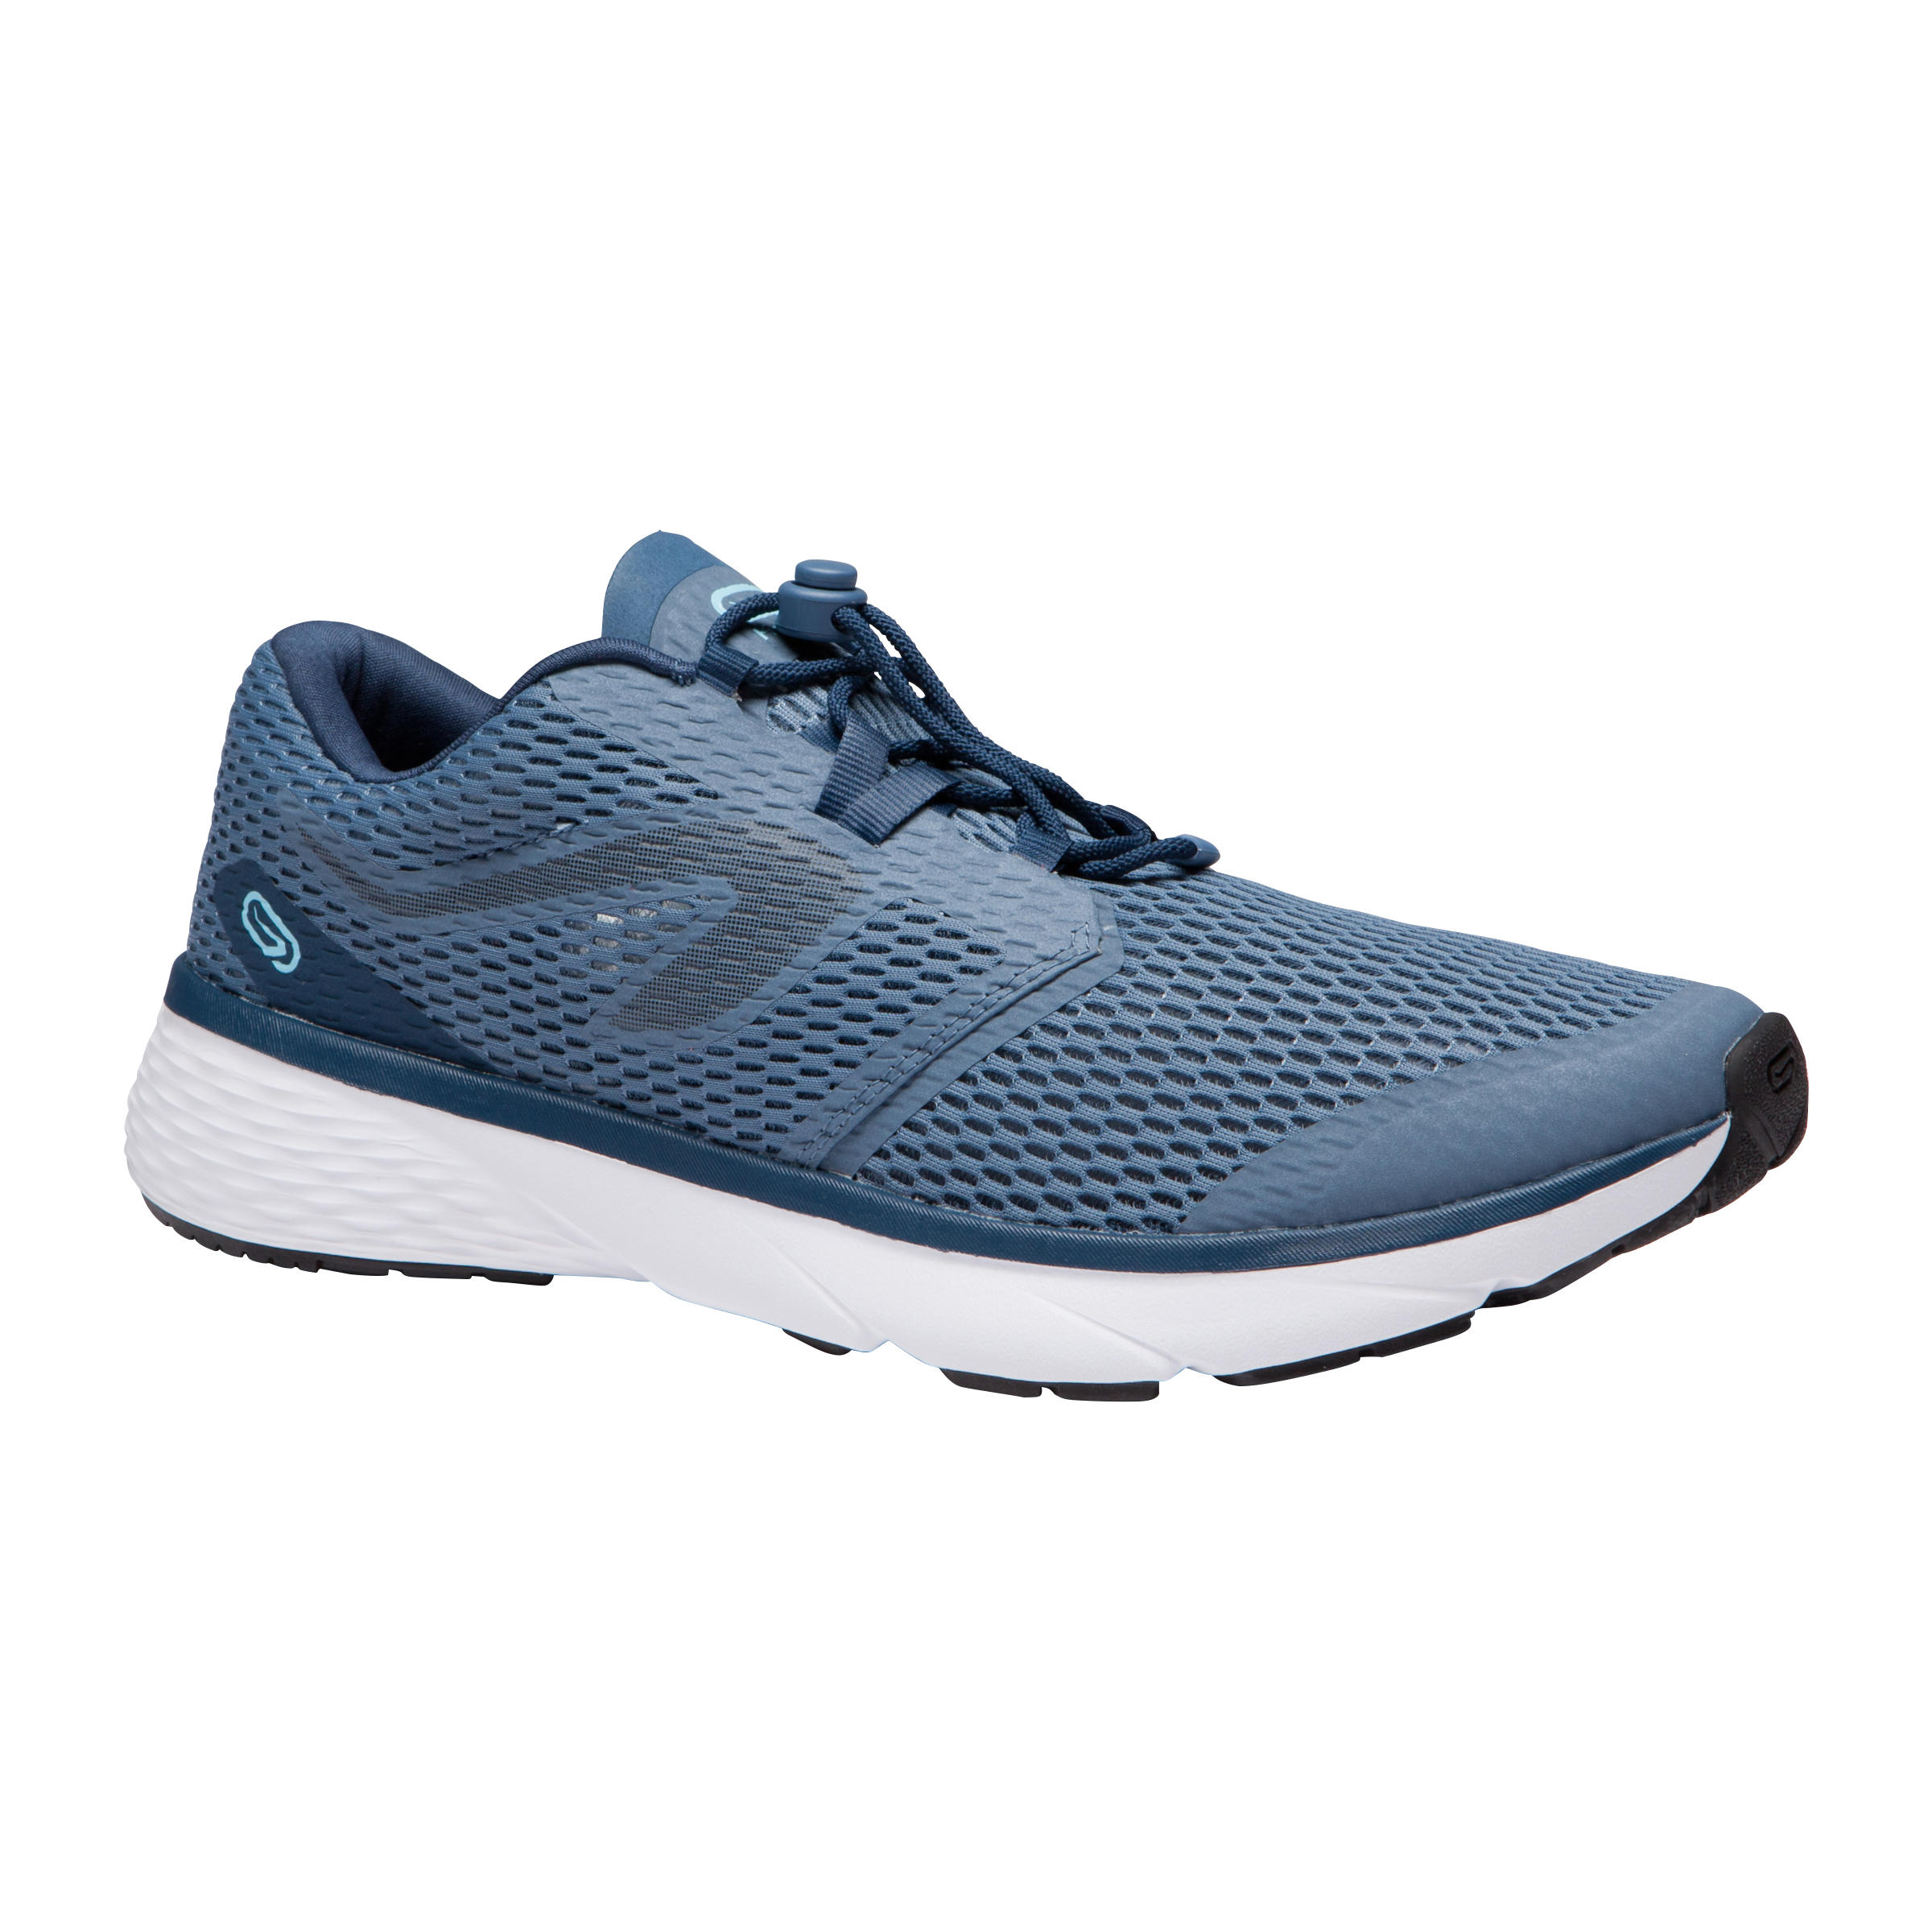 2a68f5169fe79d Running Shoes For Men And Women Online India